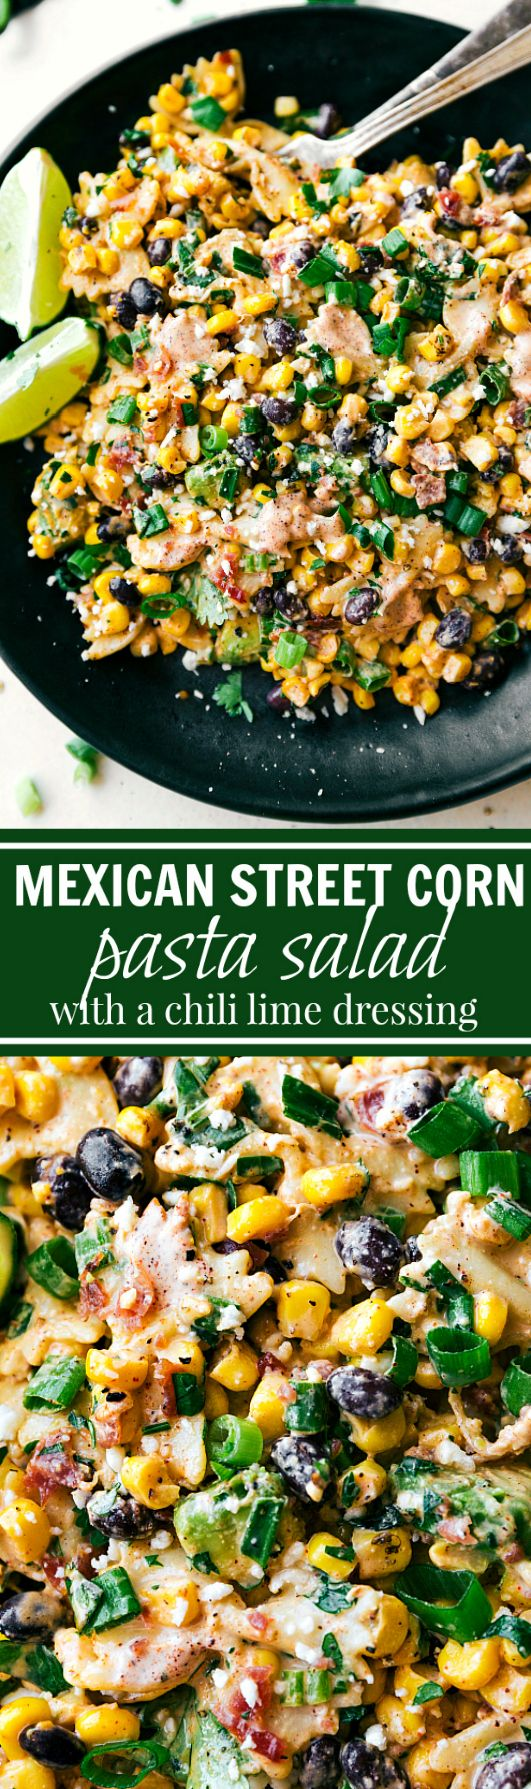 A delicious MEXICAN STREET CORN Pasta salad with tons of veggies, bacon, and a simple creamy CHILI LIME dressing. #mexicanstreetcorn